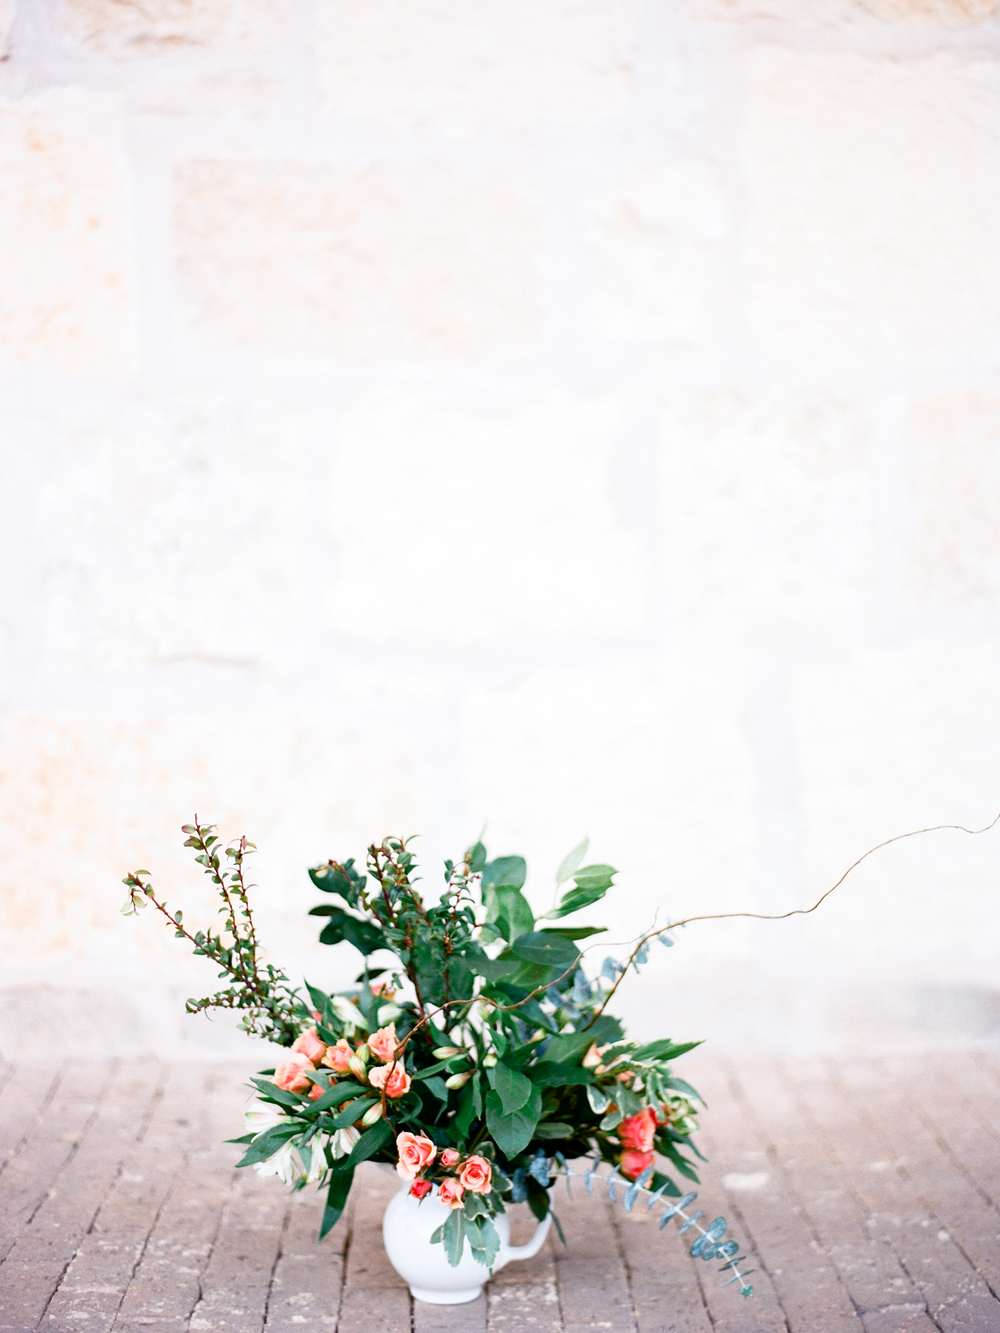 Iulia-the-plant-at-kyle-wedding-austin-texas-13-2.jpg